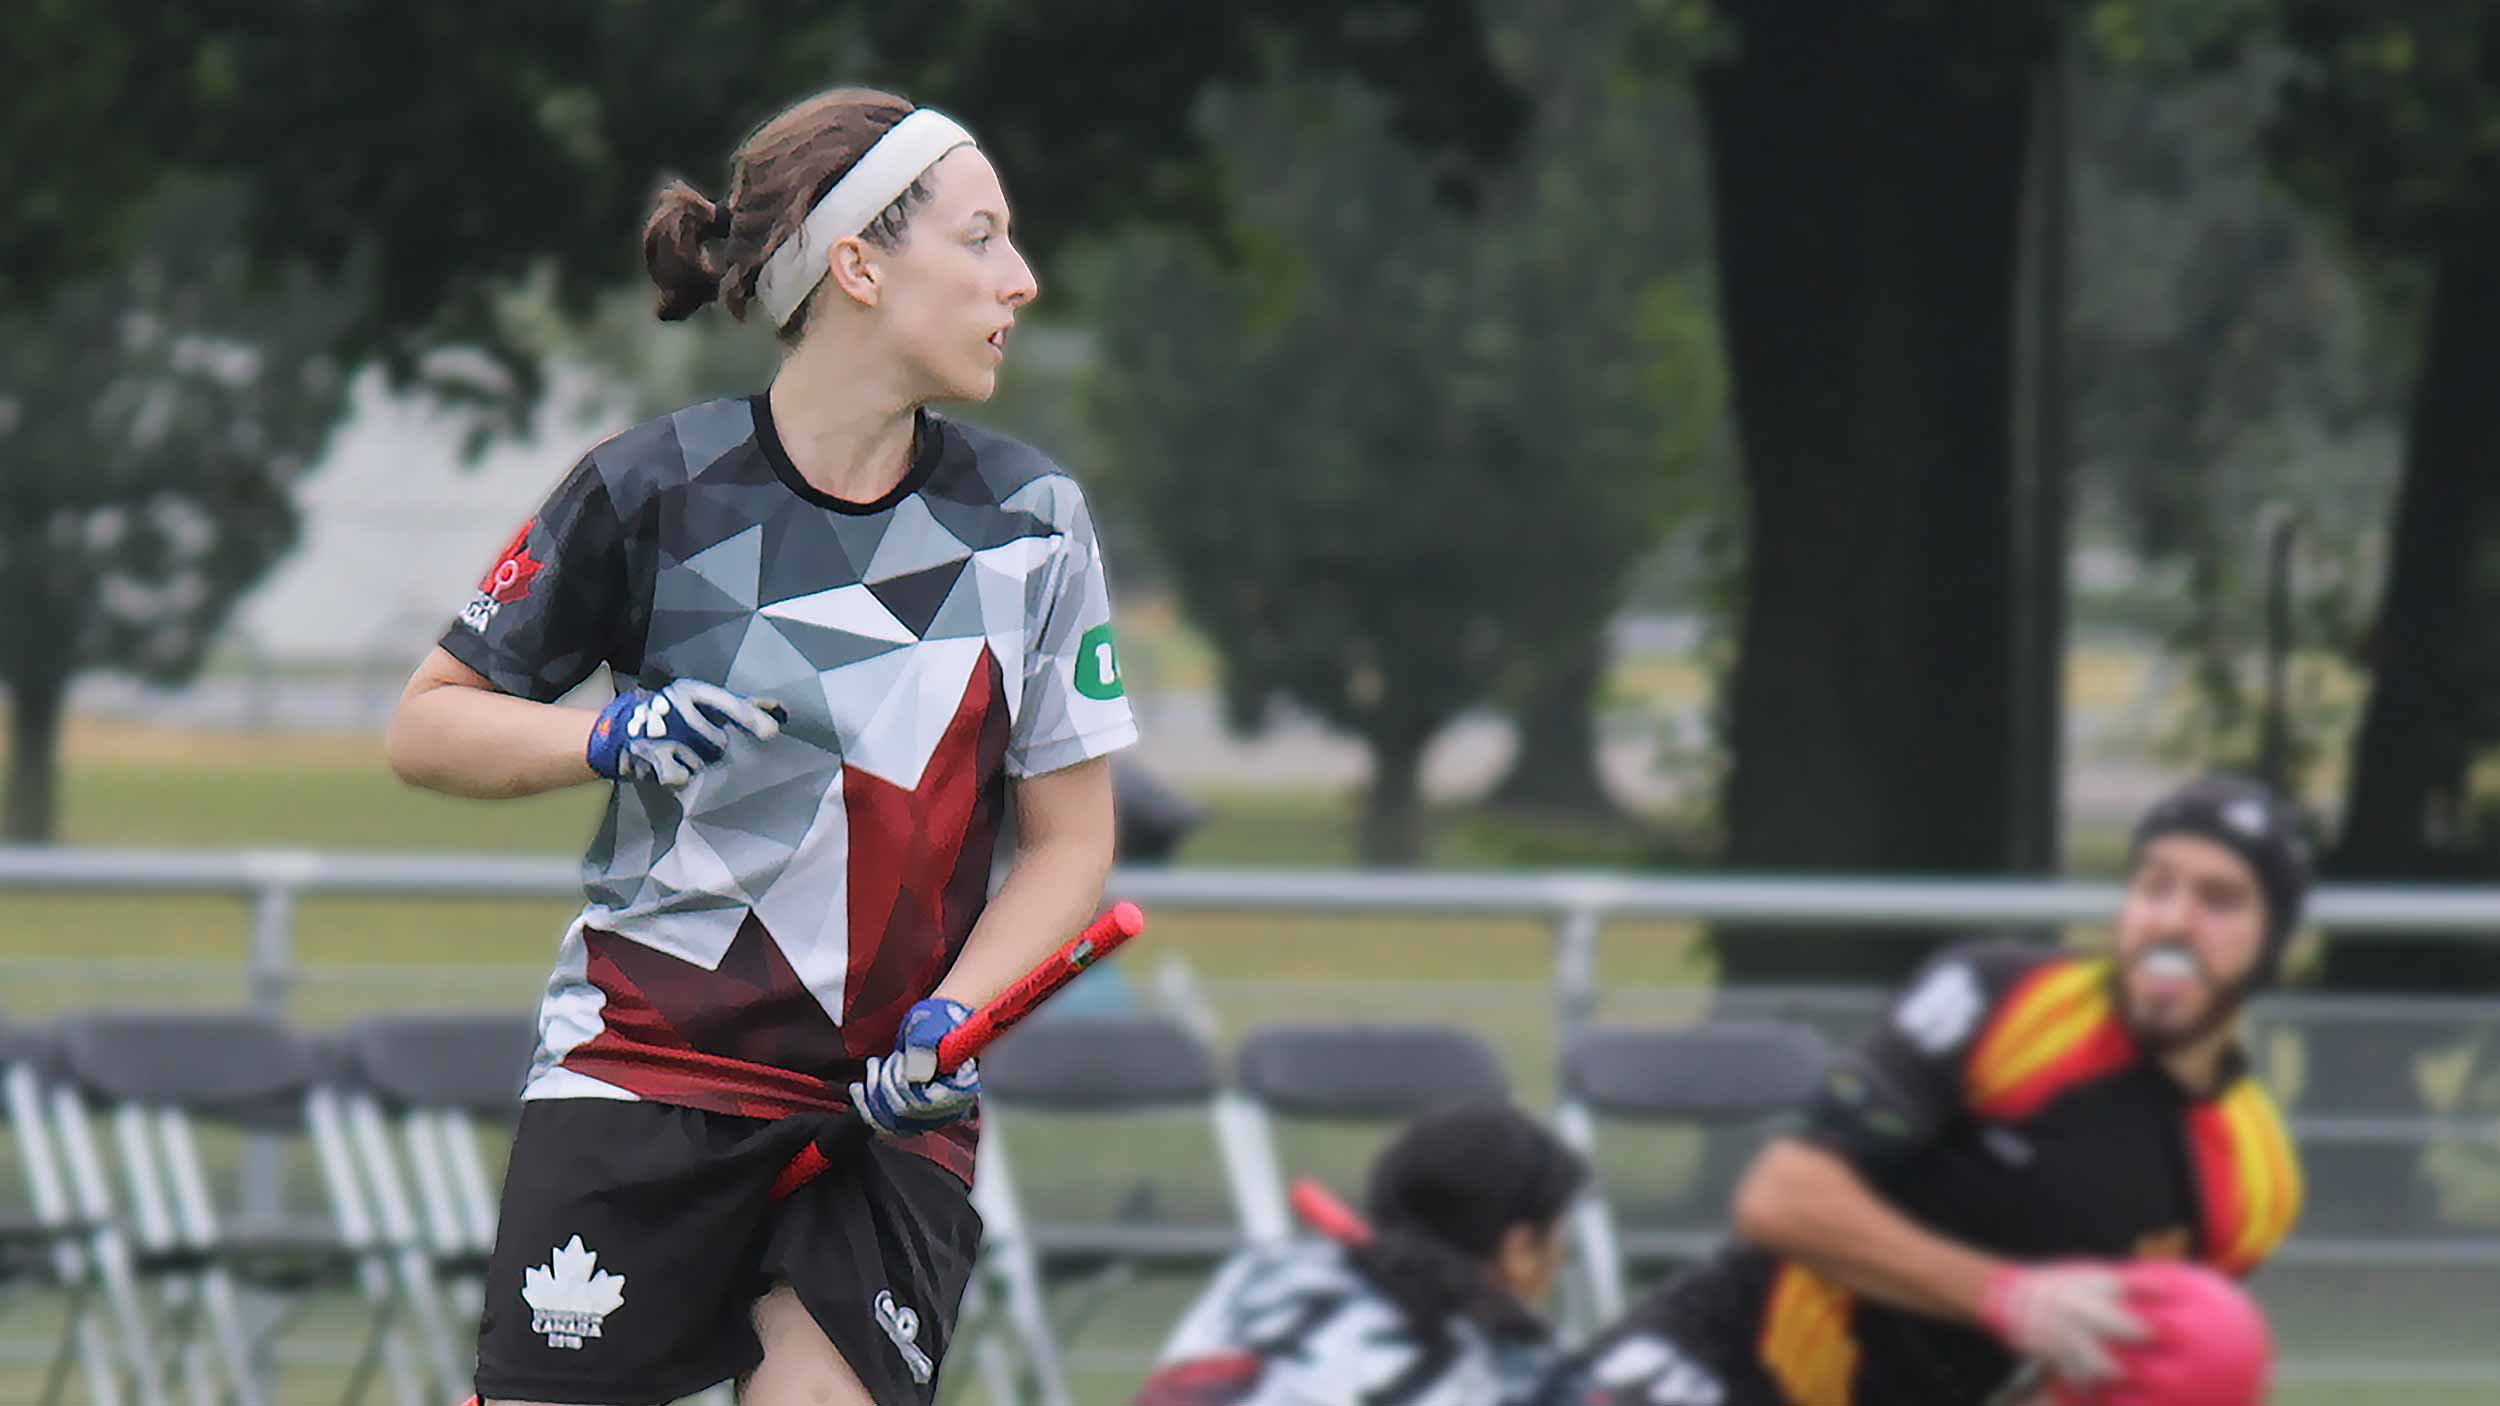 Photo of Quidditch Canada player in 2016 jersey.